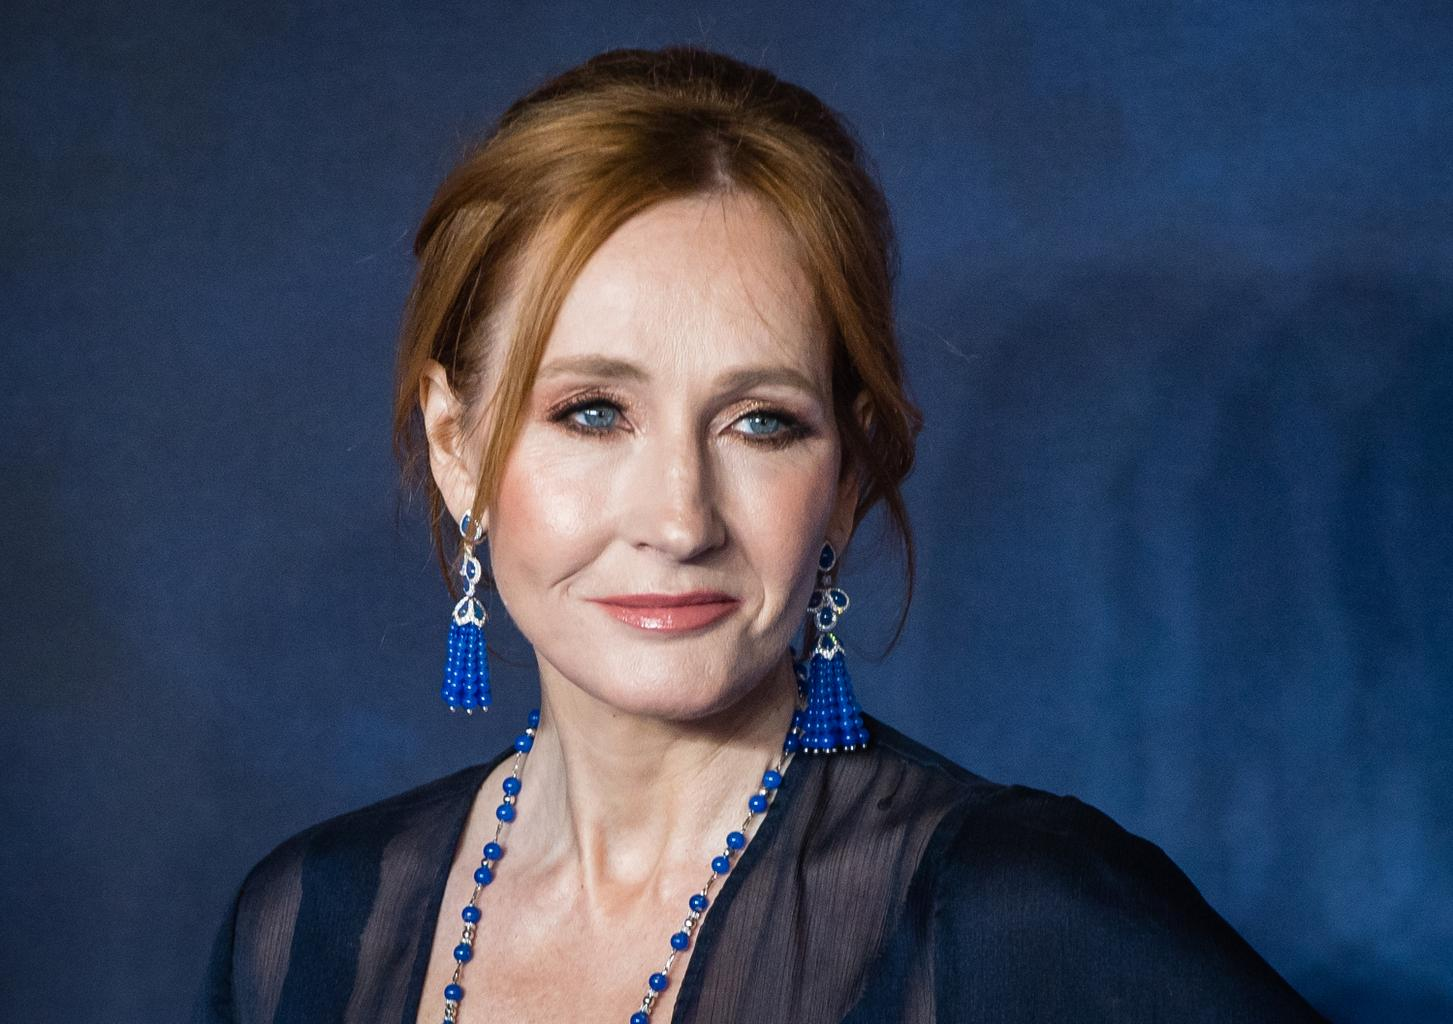 J.K. Rowling Opens Up About Dumbledore and Grindelwald